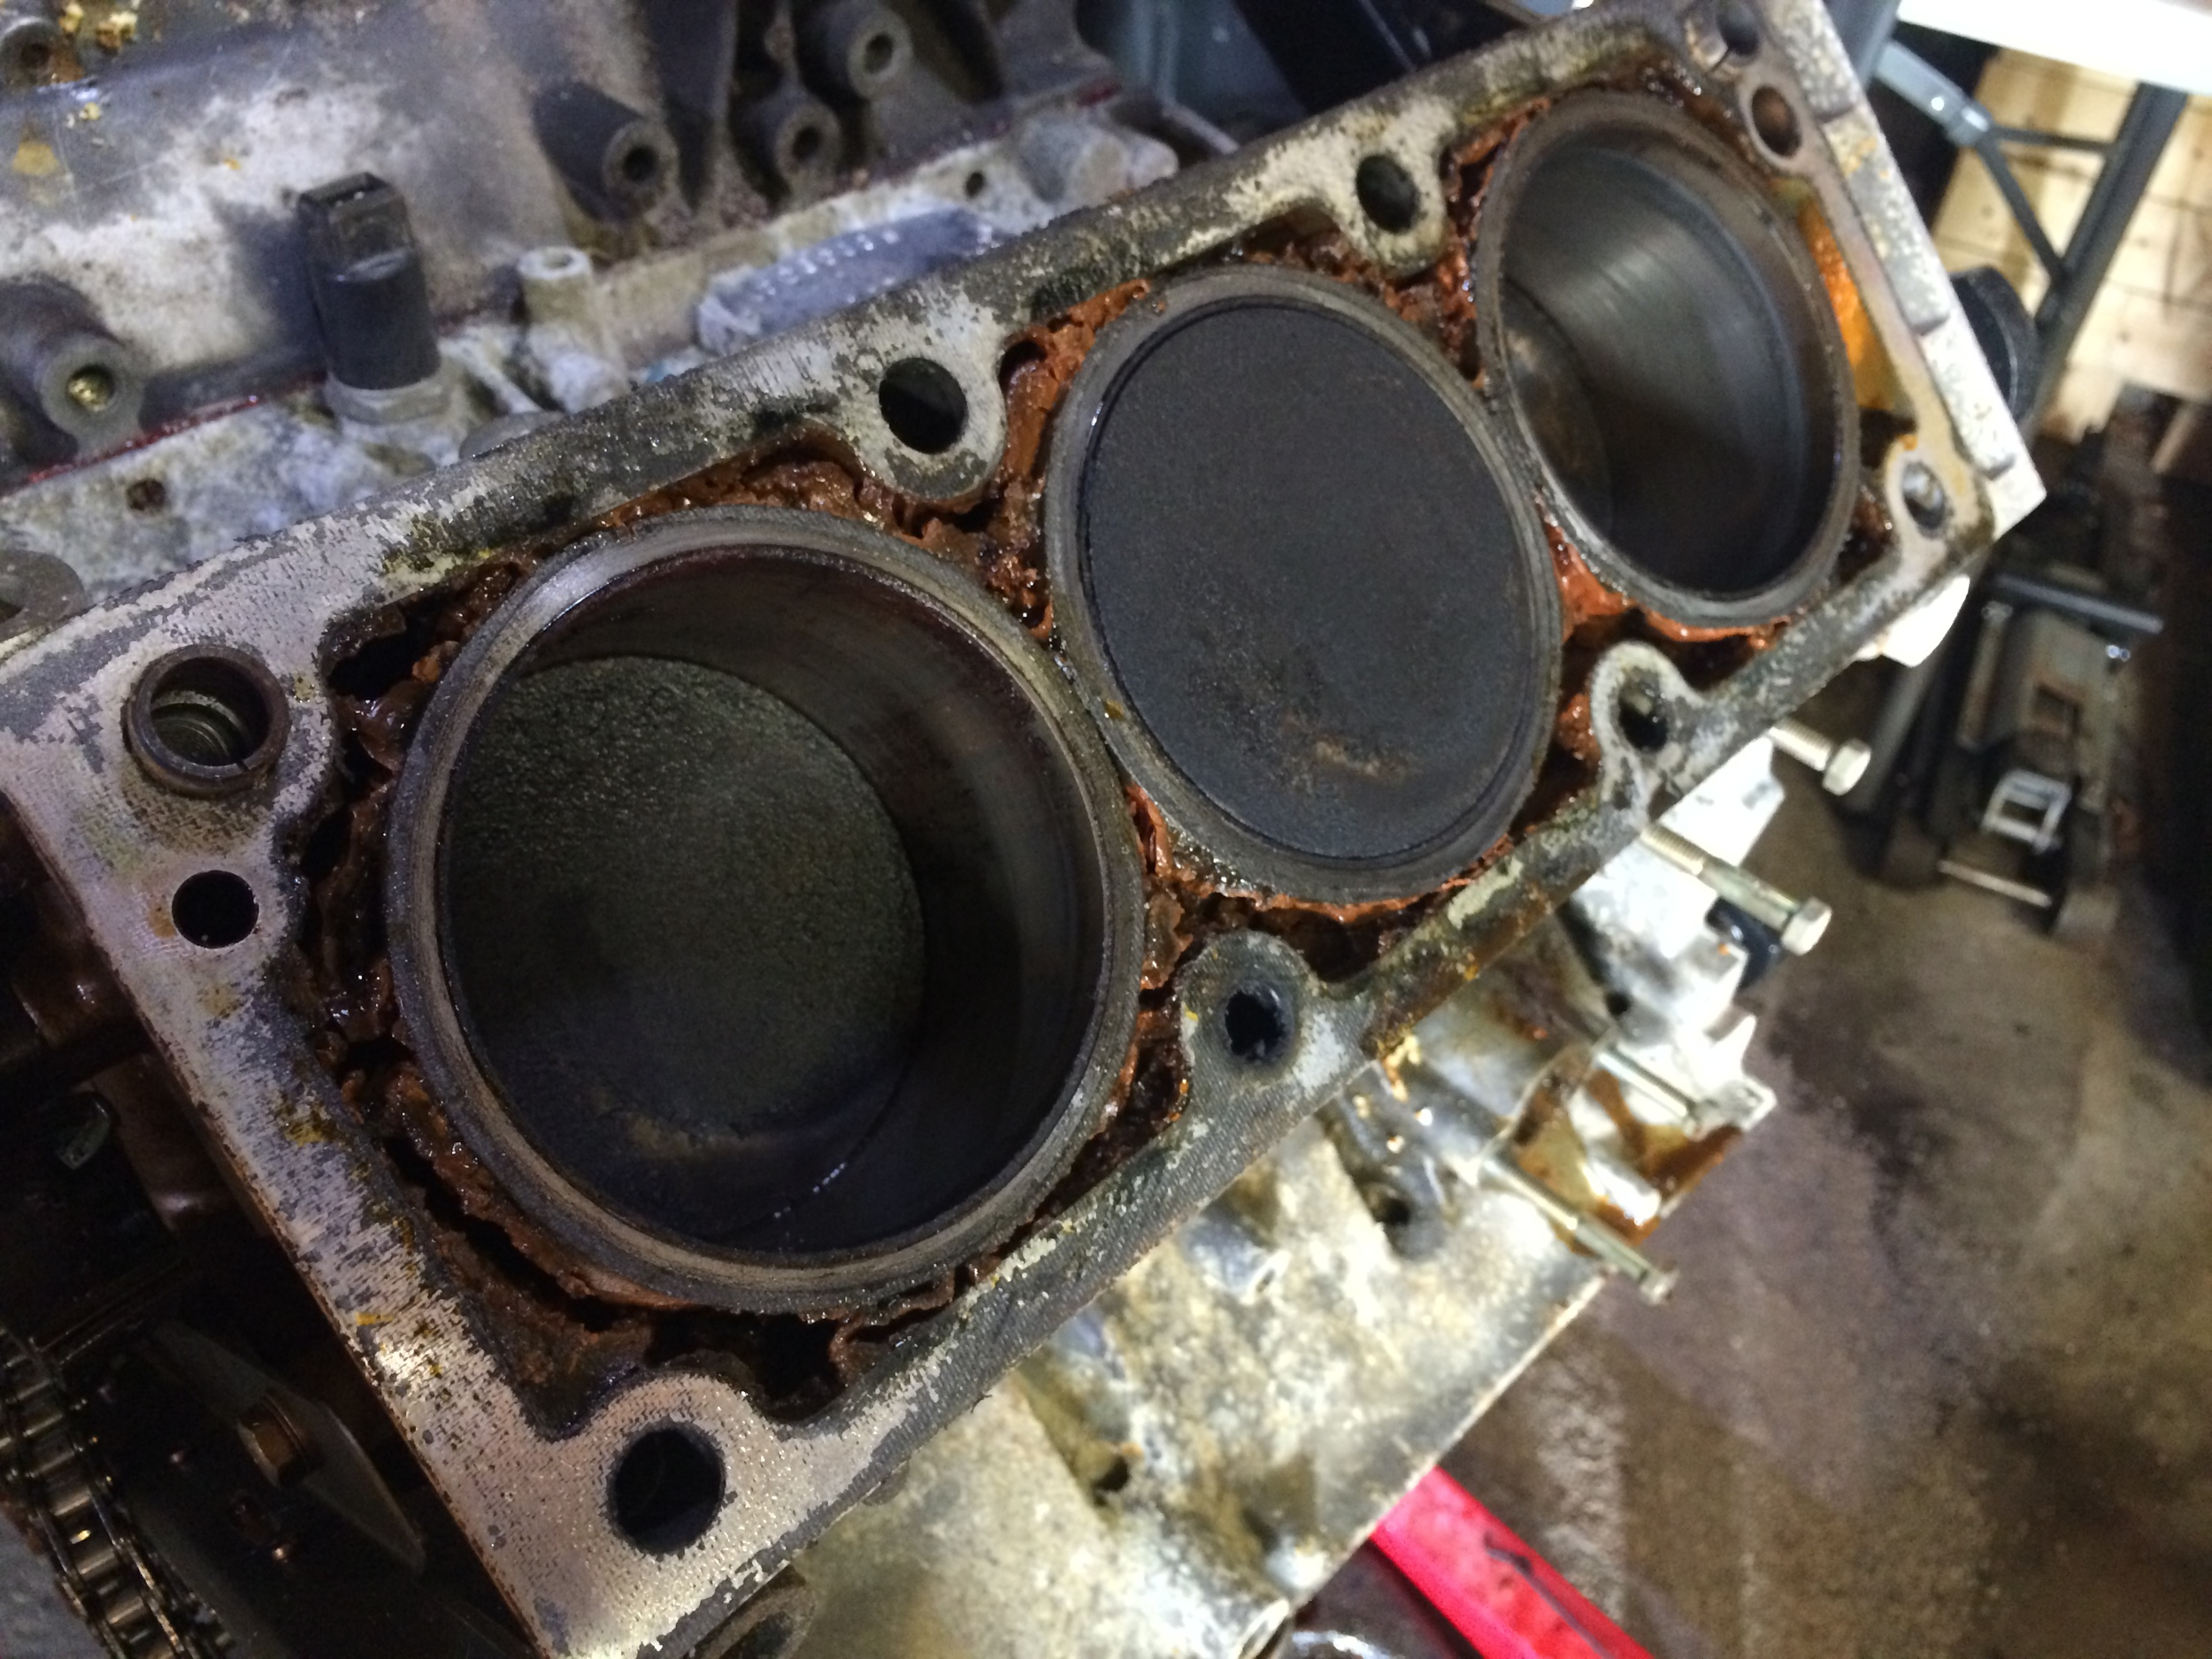 The 1-2-3 coolant jacket was just as bad as the other side.